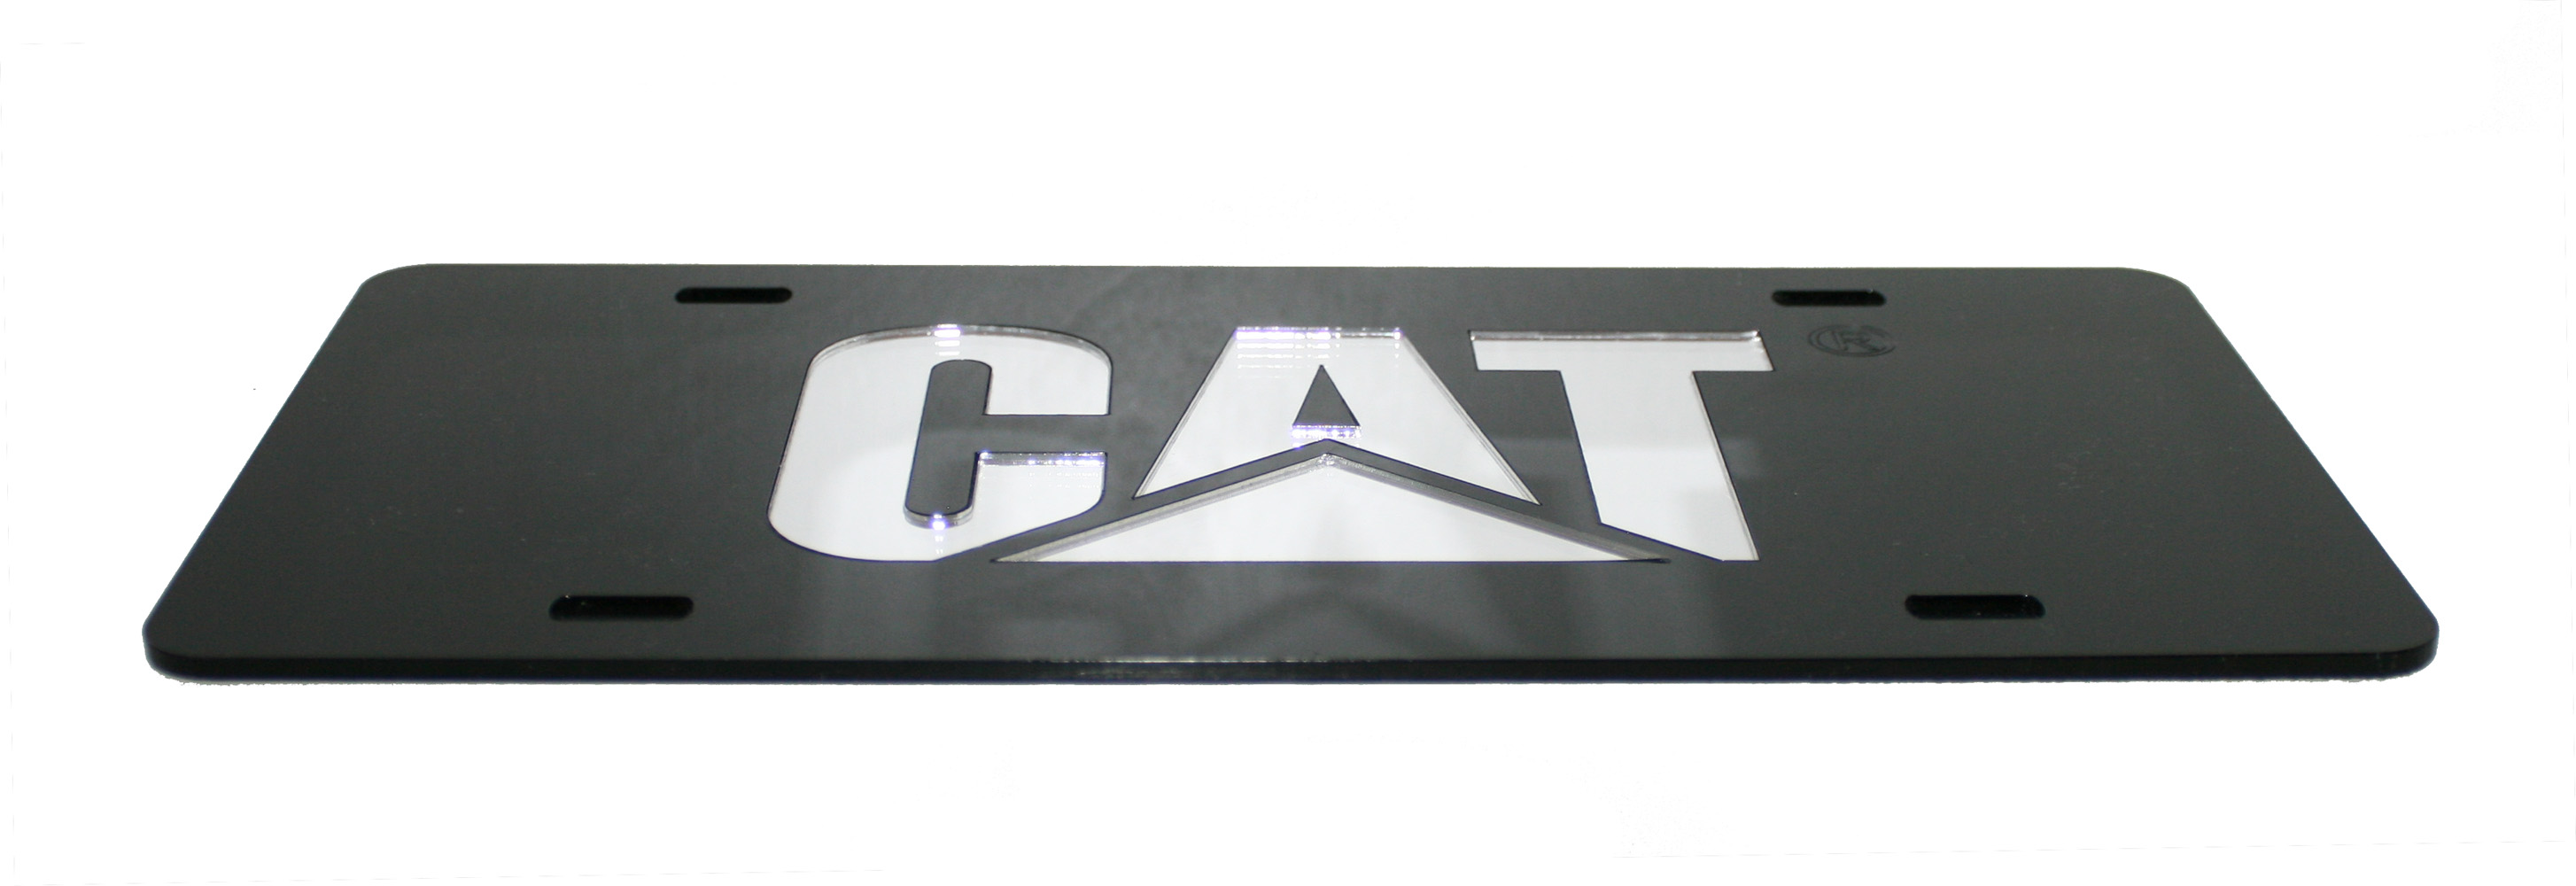 Caterpillar License Plates - Caterpillar CAT Black Acrylic Laser Cut ...